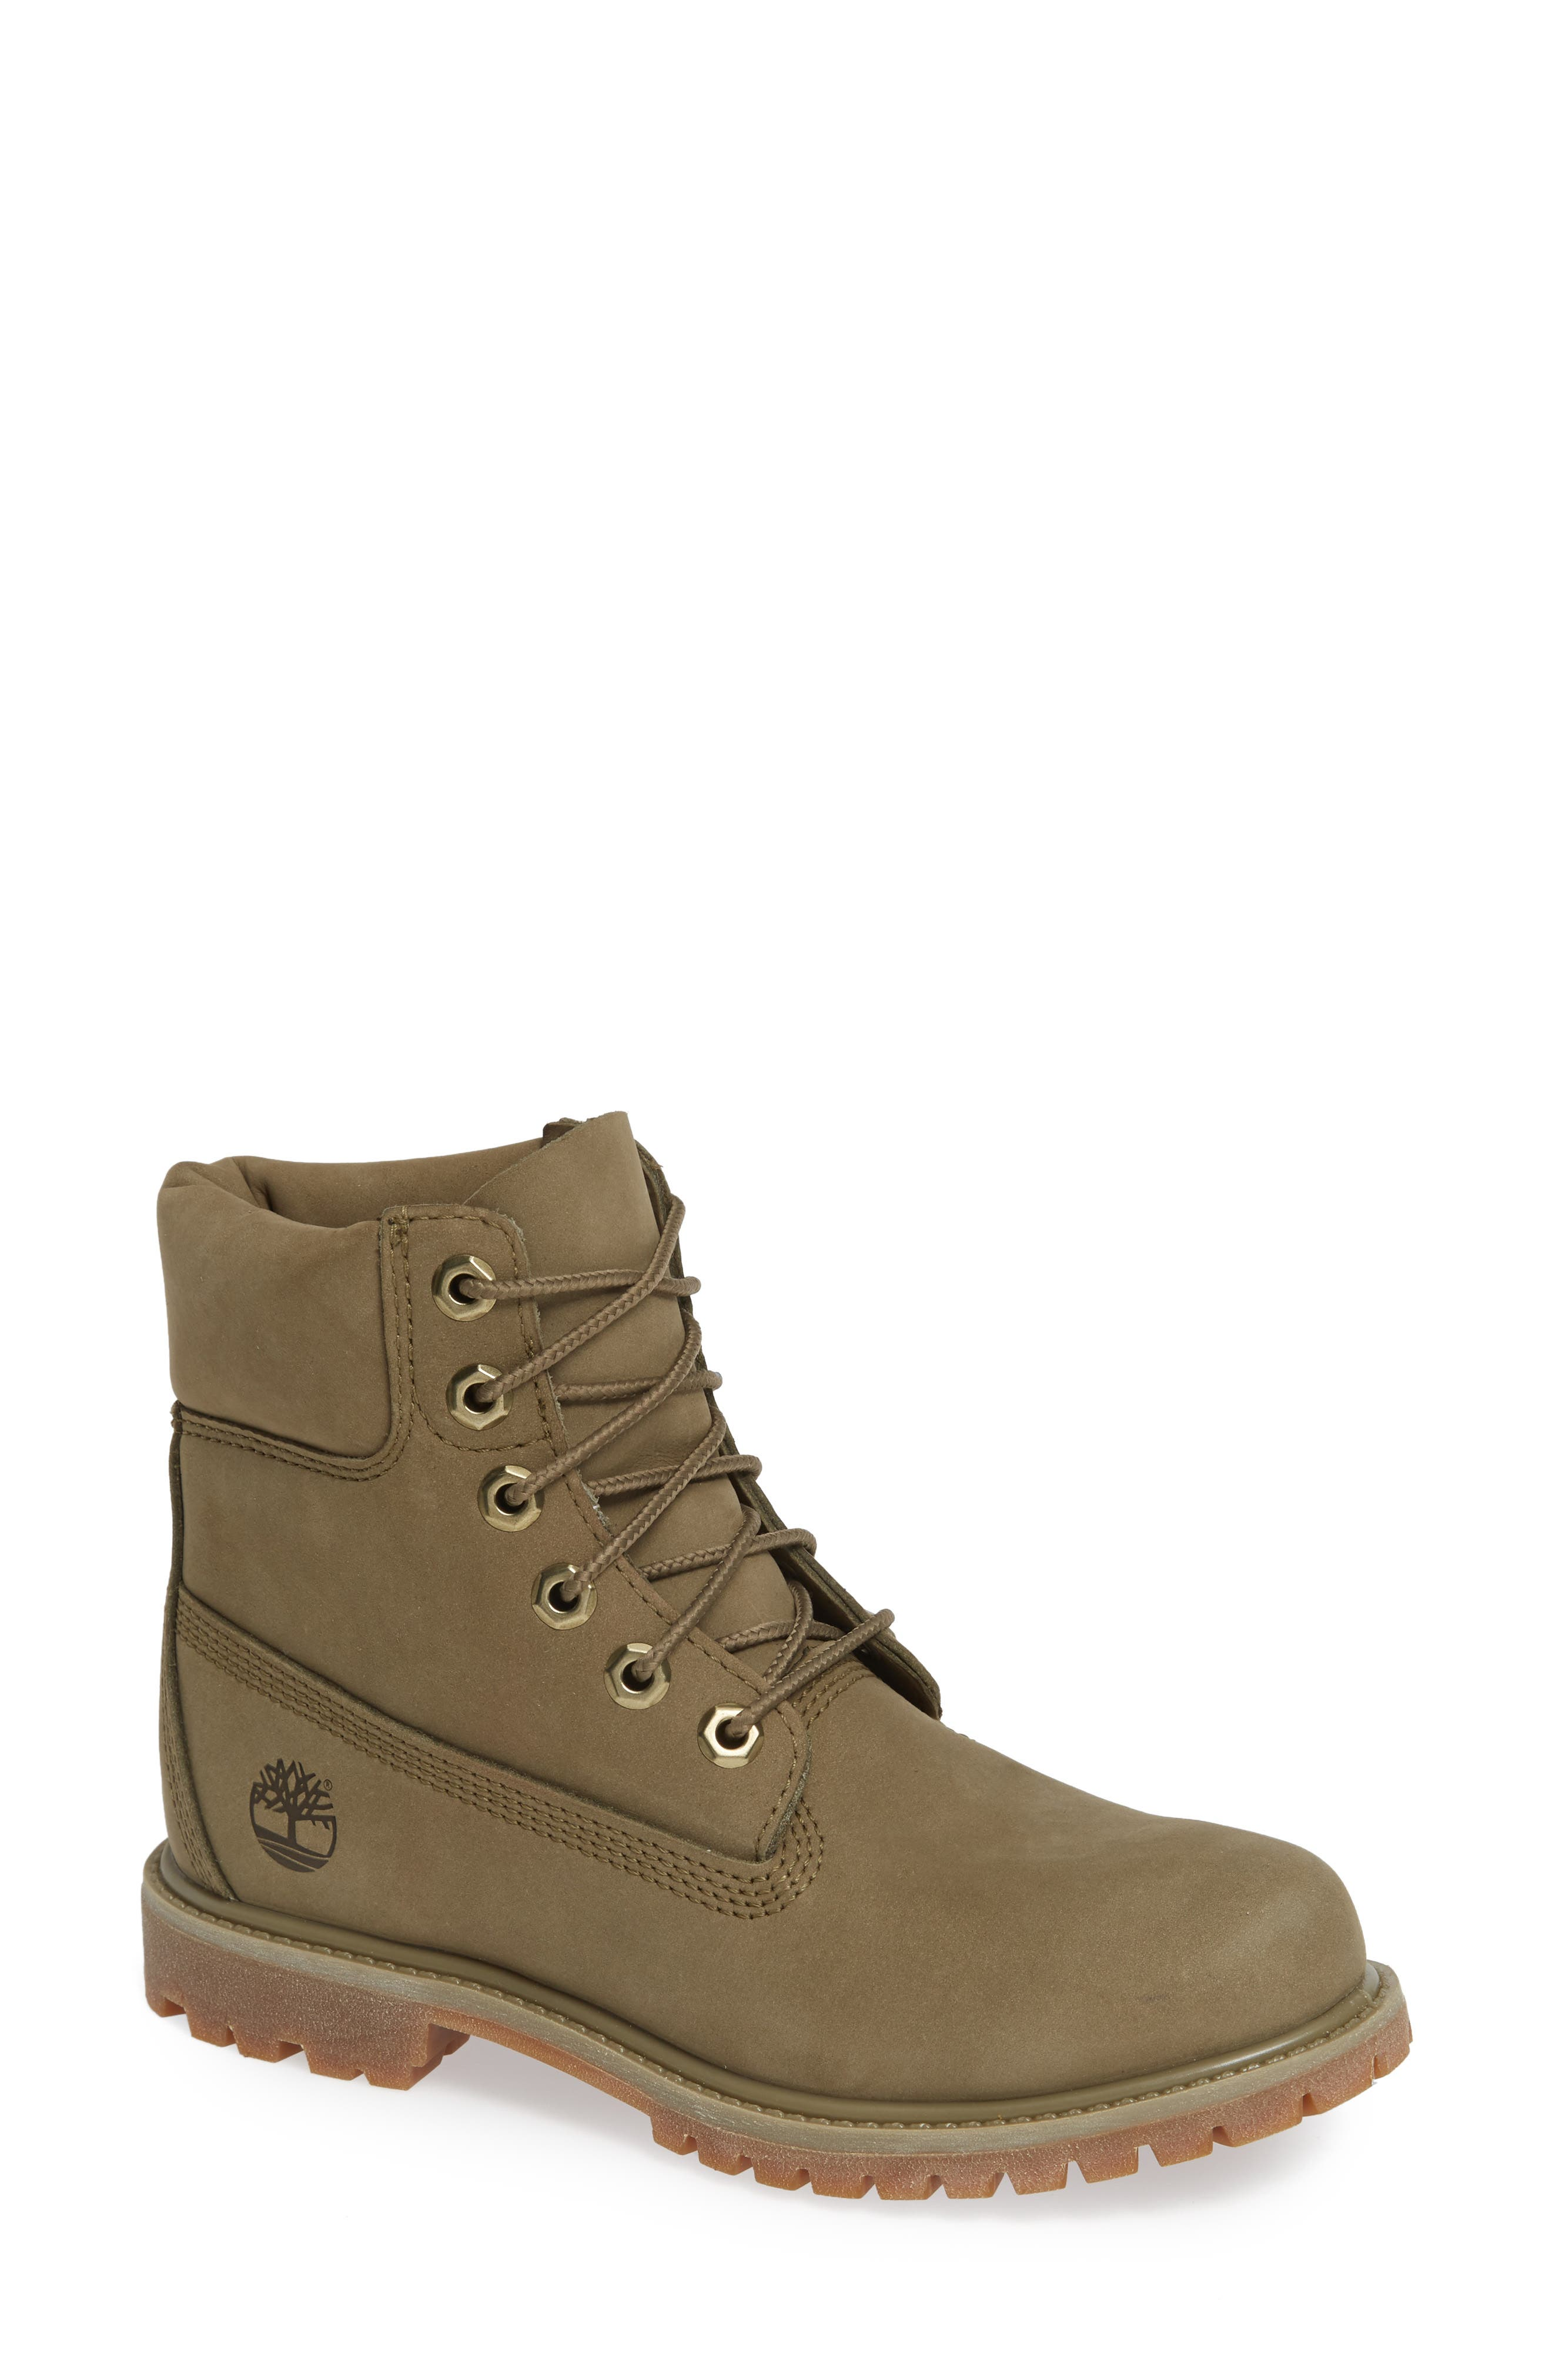 '6 Inch Premium' Waterproof Boot,                             Main thumbnail 1, color,                             COVERT GREEN LEATHER